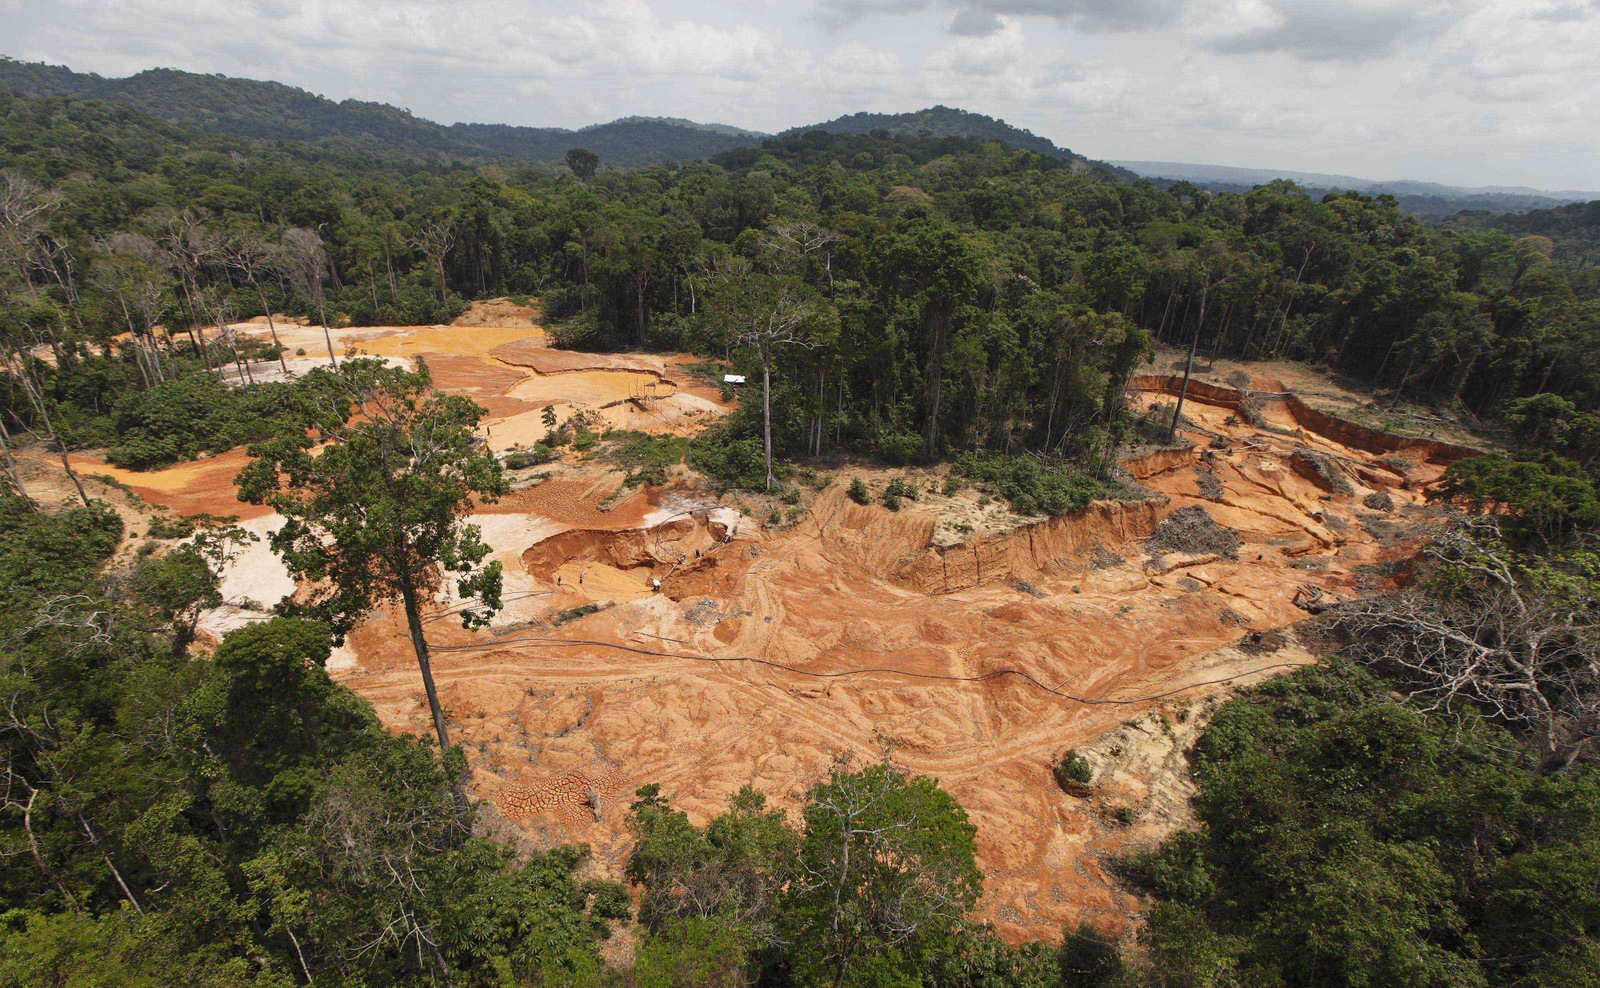 A gold mine is seen in a national park forest near Novo Progresso in Brazil's northern state of Para. (AP/Andre Penner)